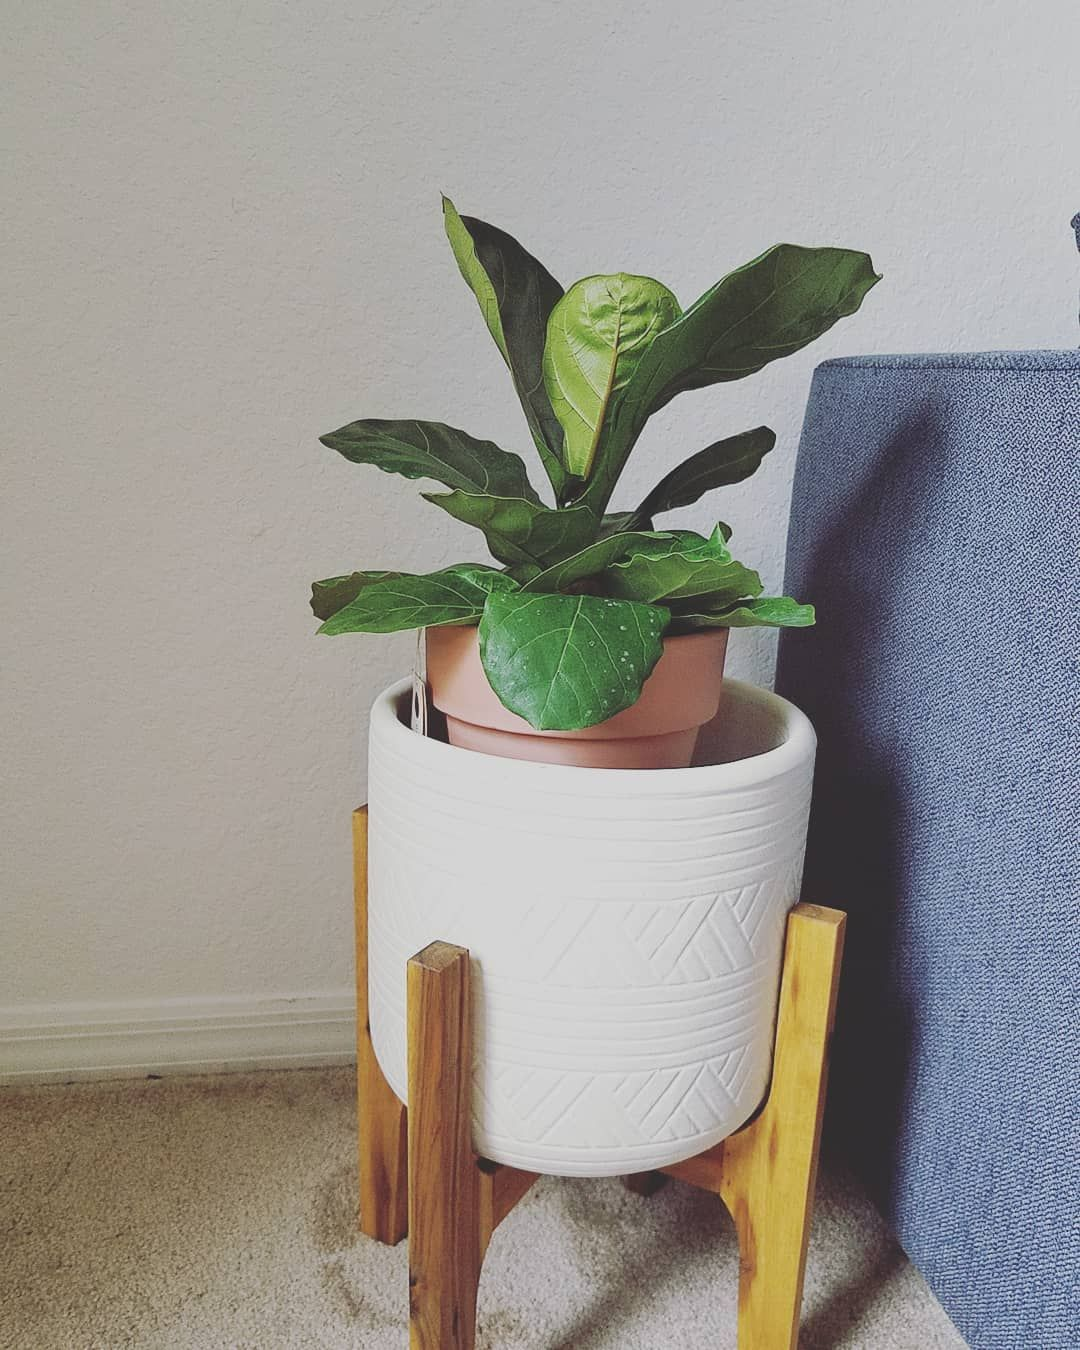 I finally joined the masses and got myself a fiddle leaf fig 😊 I purposefully got the absolute smallest babe I could find just because I find it so much more satisfying to watch a small plant grow. And yes I know it's way too small for that plant stand right now but it'll grow into it. Also I have fully emotionally prepared myself for this thing to throw a fit. I did do some research before getting it and everything said that odds are the plant is probably gonna get some leaf browning and even